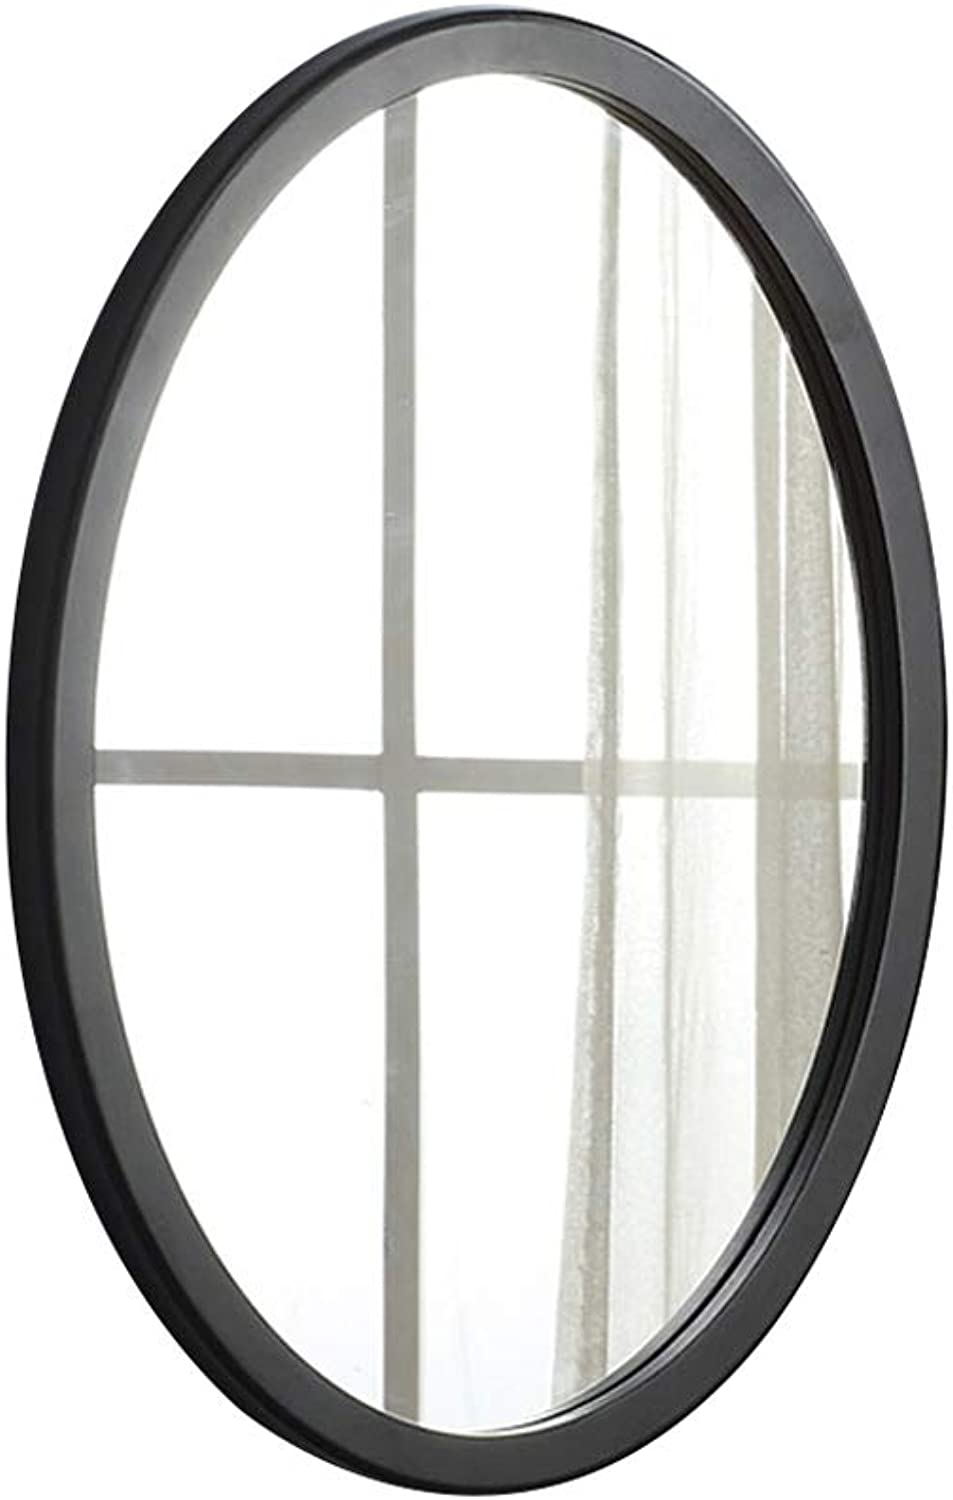 Mirror Elliptical Mirror Wall Mounted Mirror Hanging Makeup Mirror Decorative Hanging Mirror 50  35cm (color   Black-50  35cm)